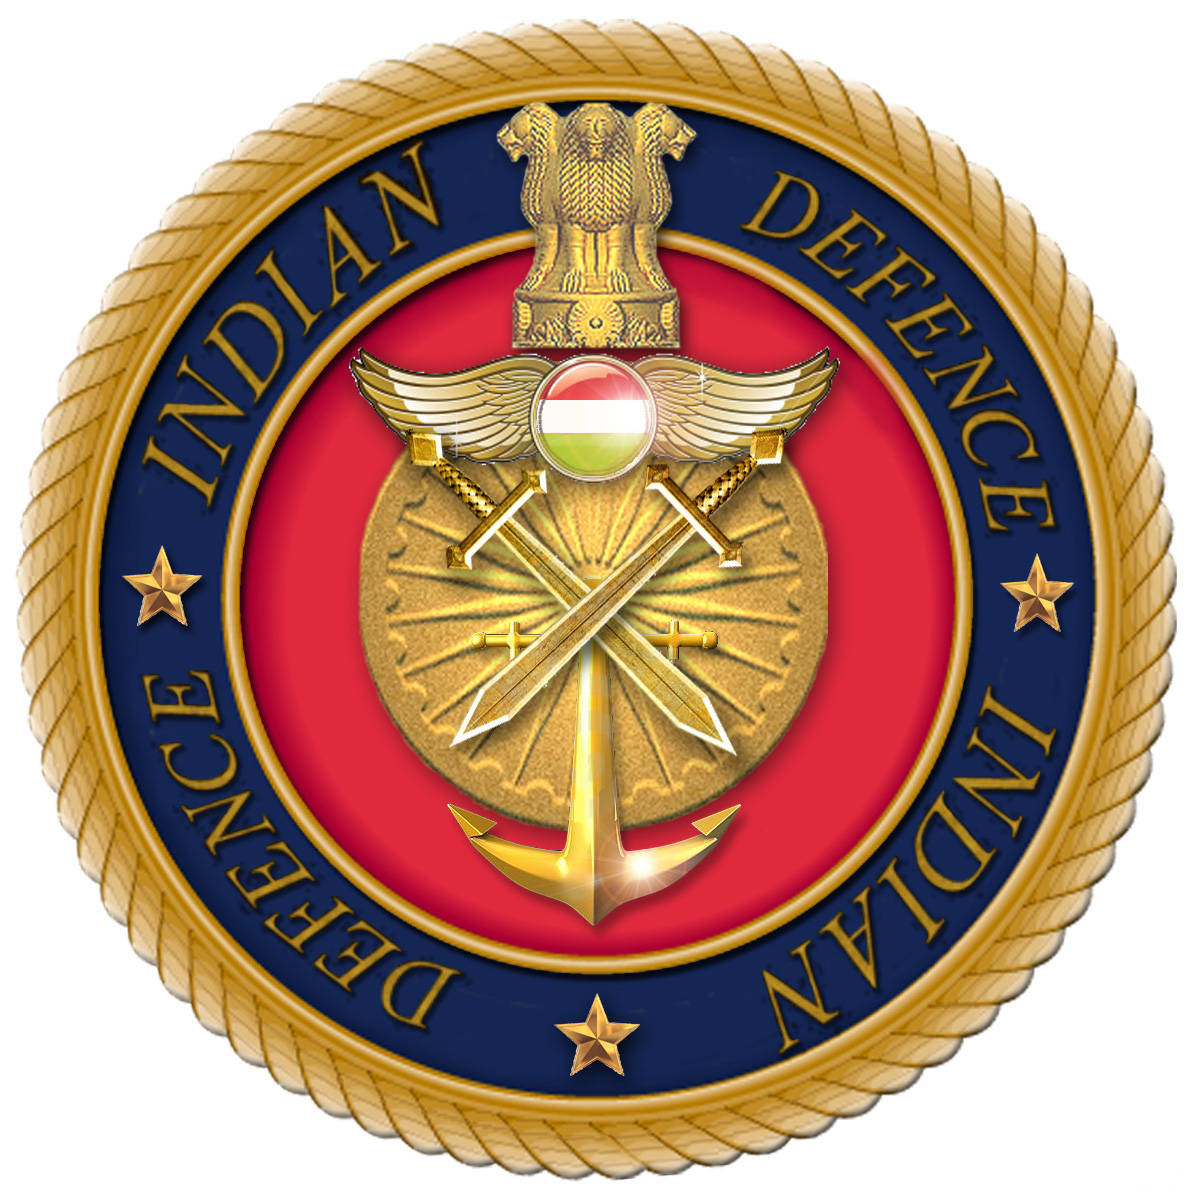 Download Indian Army Wallpapers For Mobile Phones Gallery